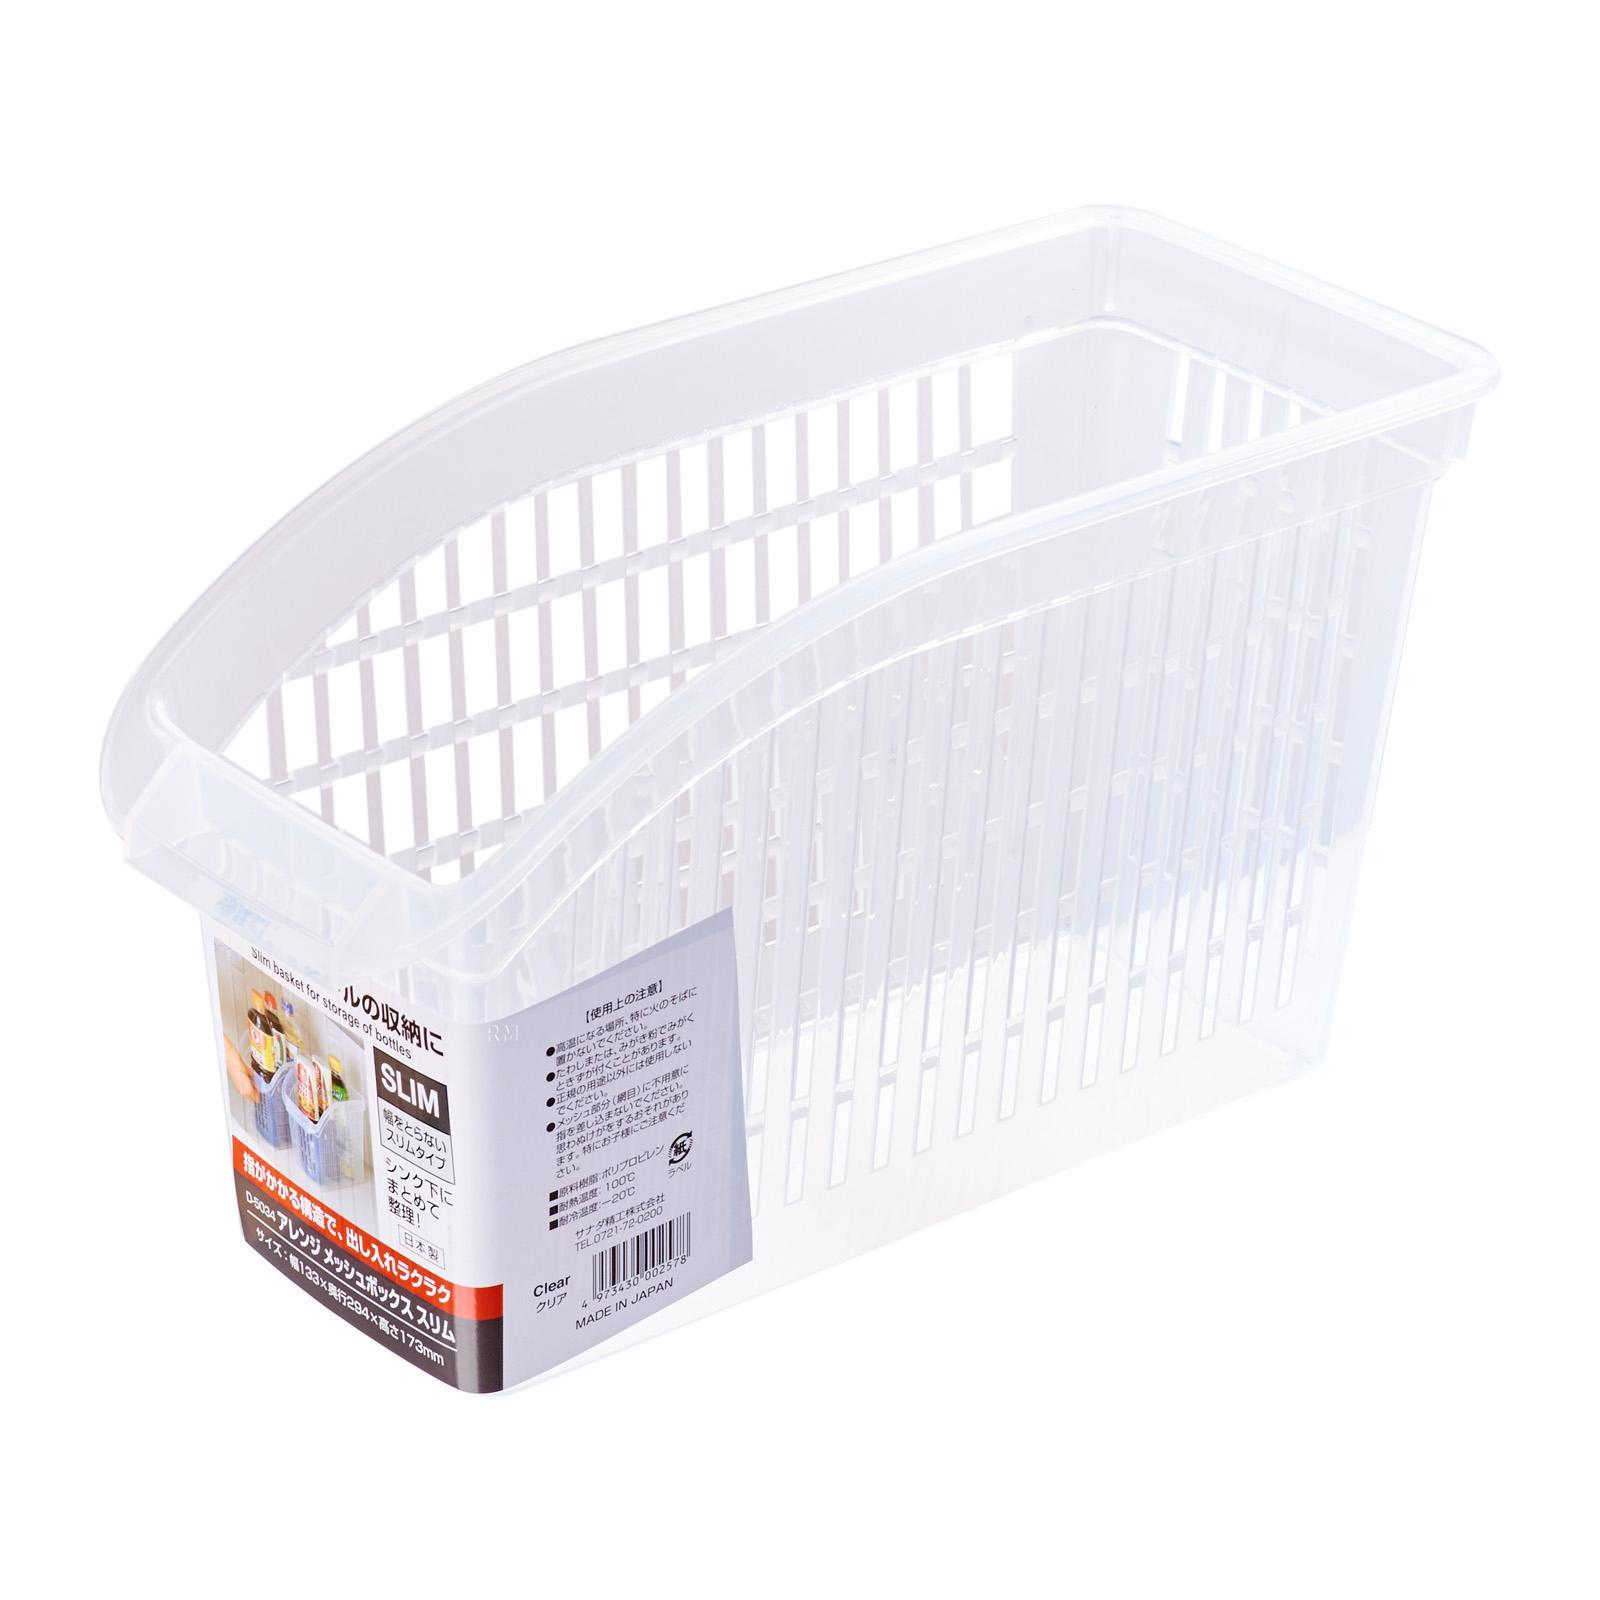 Sanada Seiko Storage Basket Mesh Box Slim/Clear